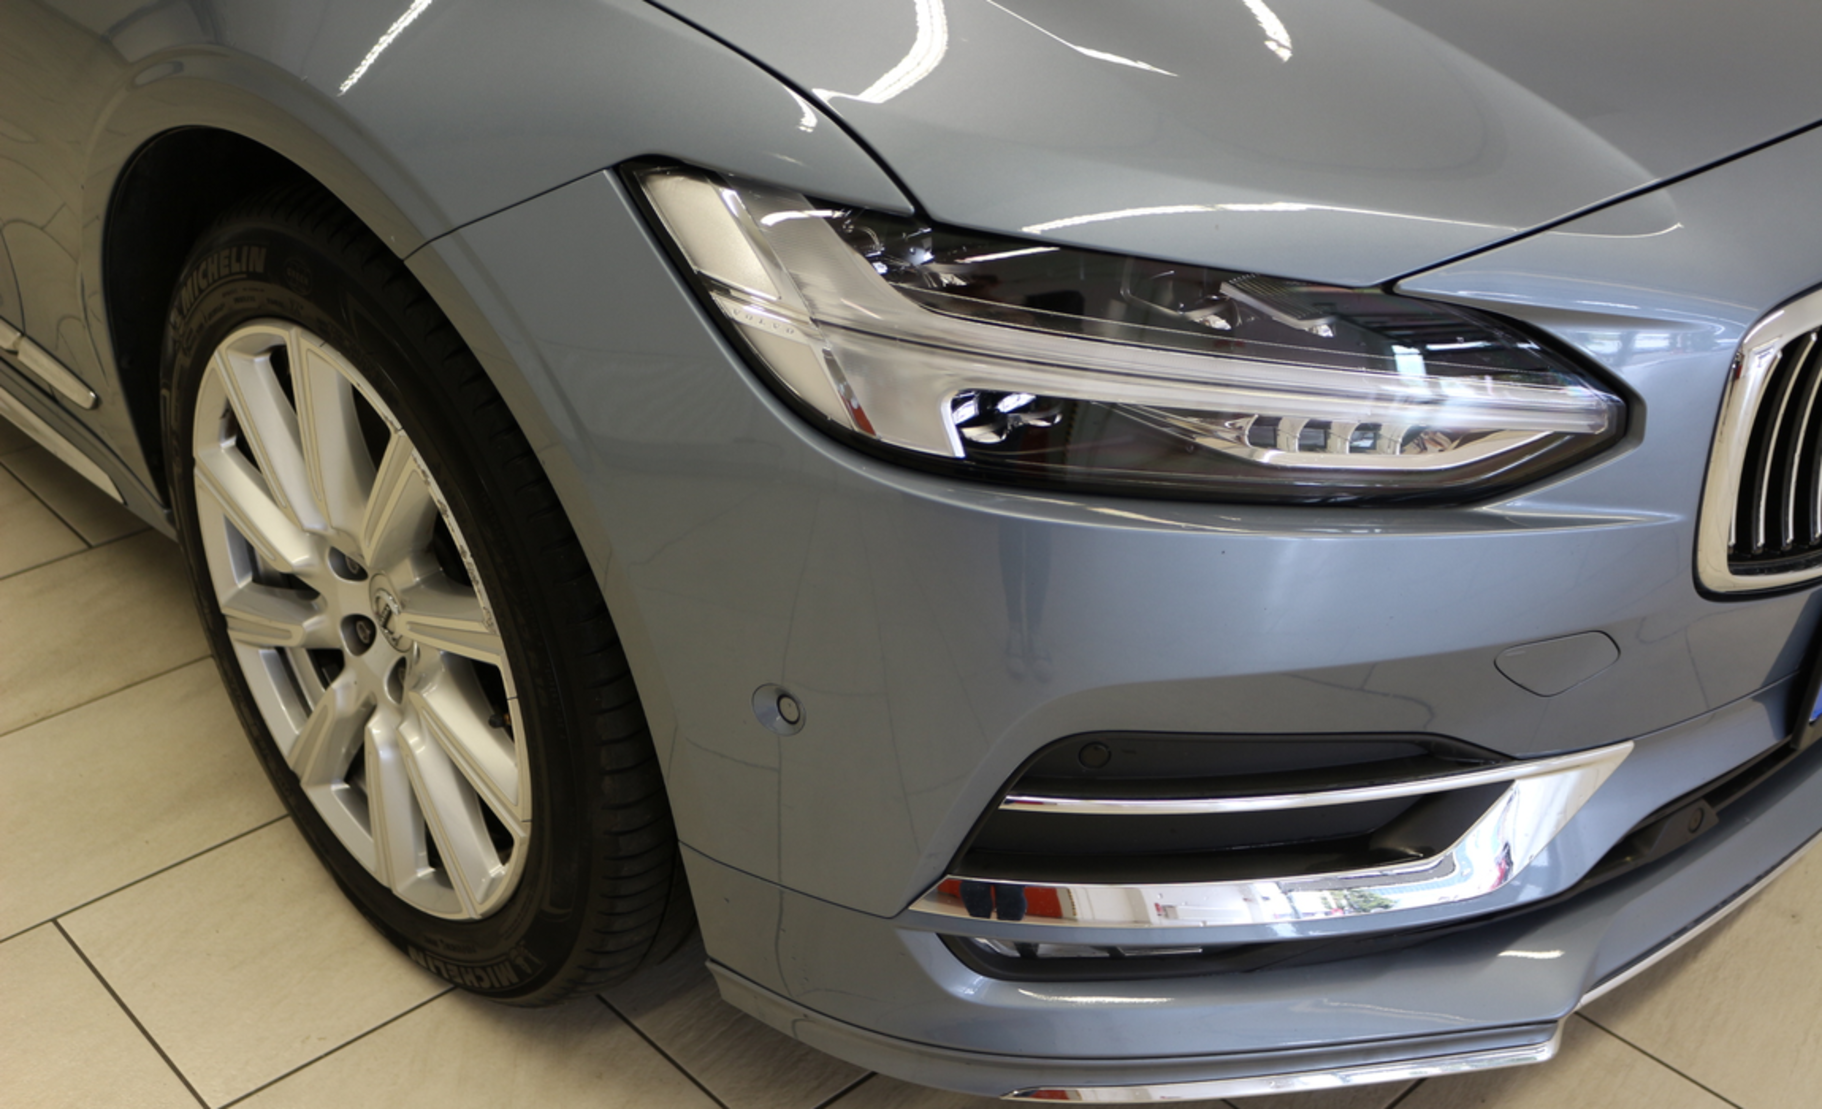 Volvo S90 D5 AWD Geartronic, Inscription (652470) detail2